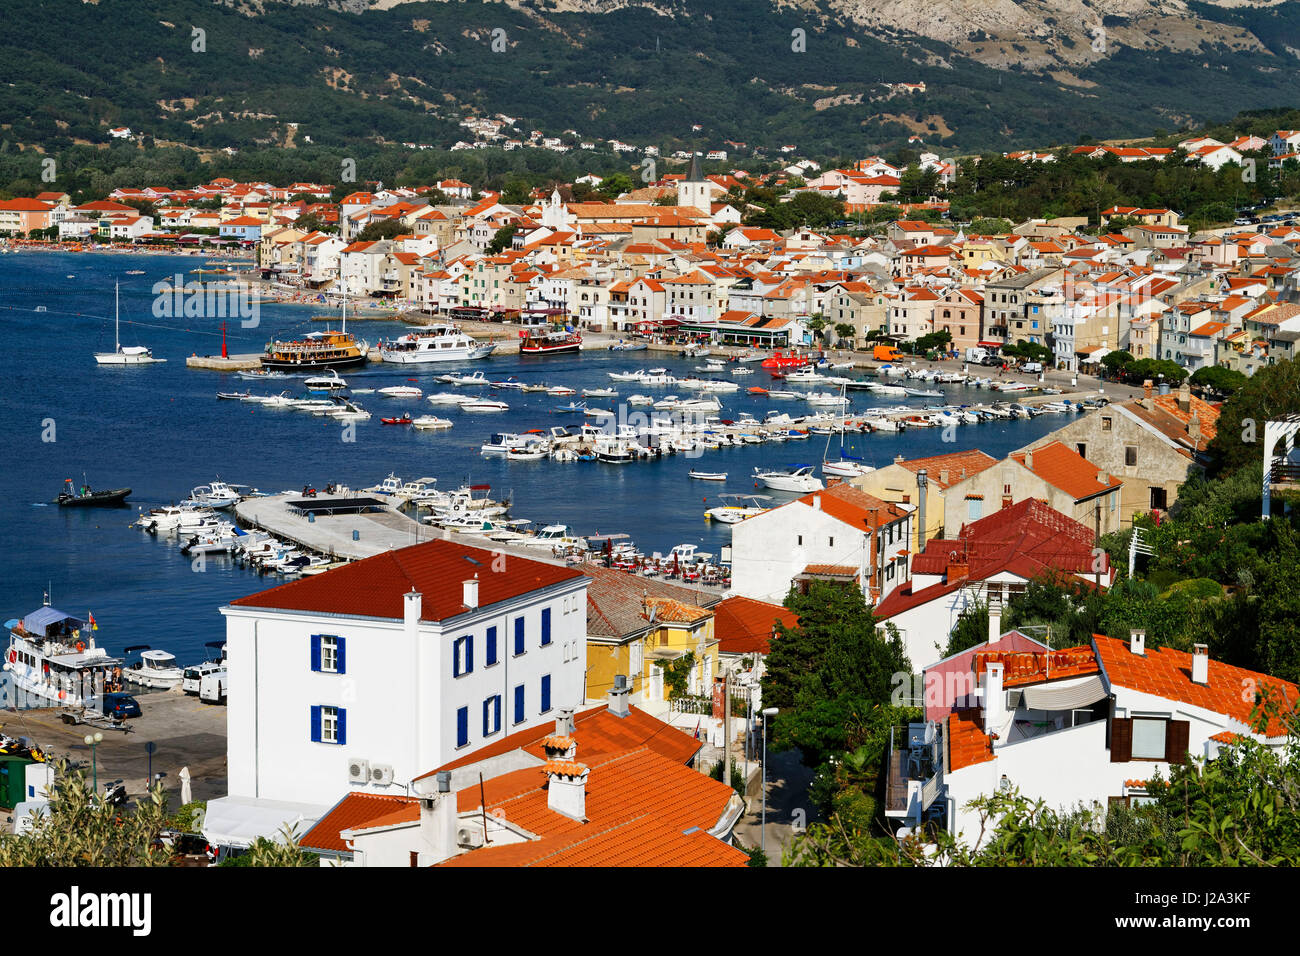 Baška on Krk island, Croatia - Stock Image